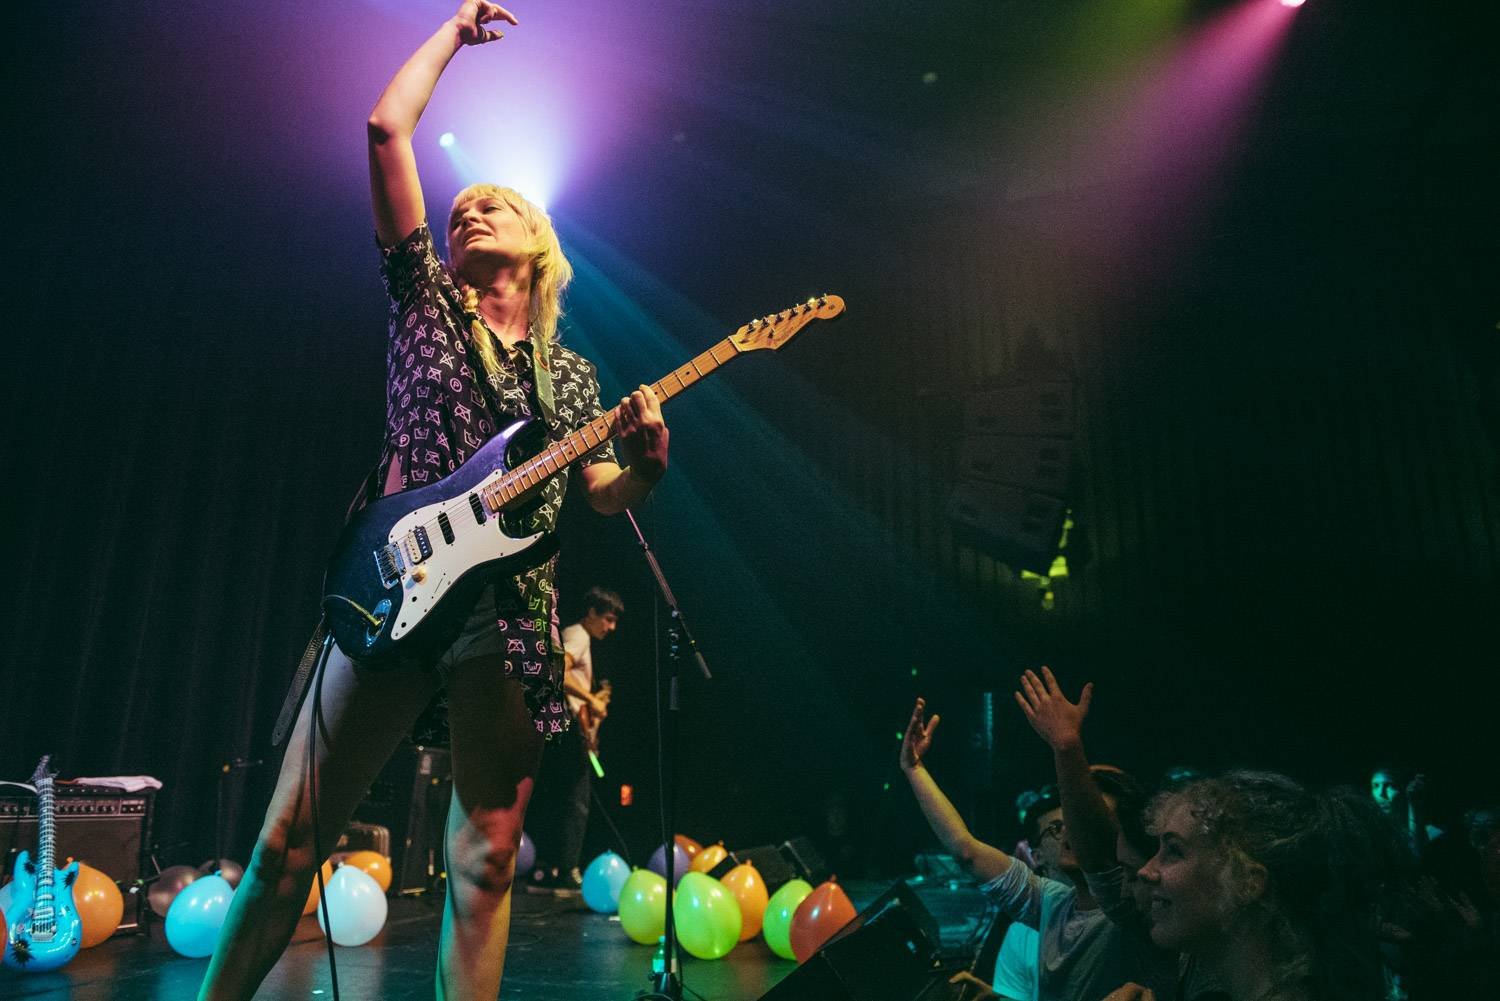 Cherry Glazerr at the Imperial, Vancouver, June 23 2018. Pavel Boiko photo.